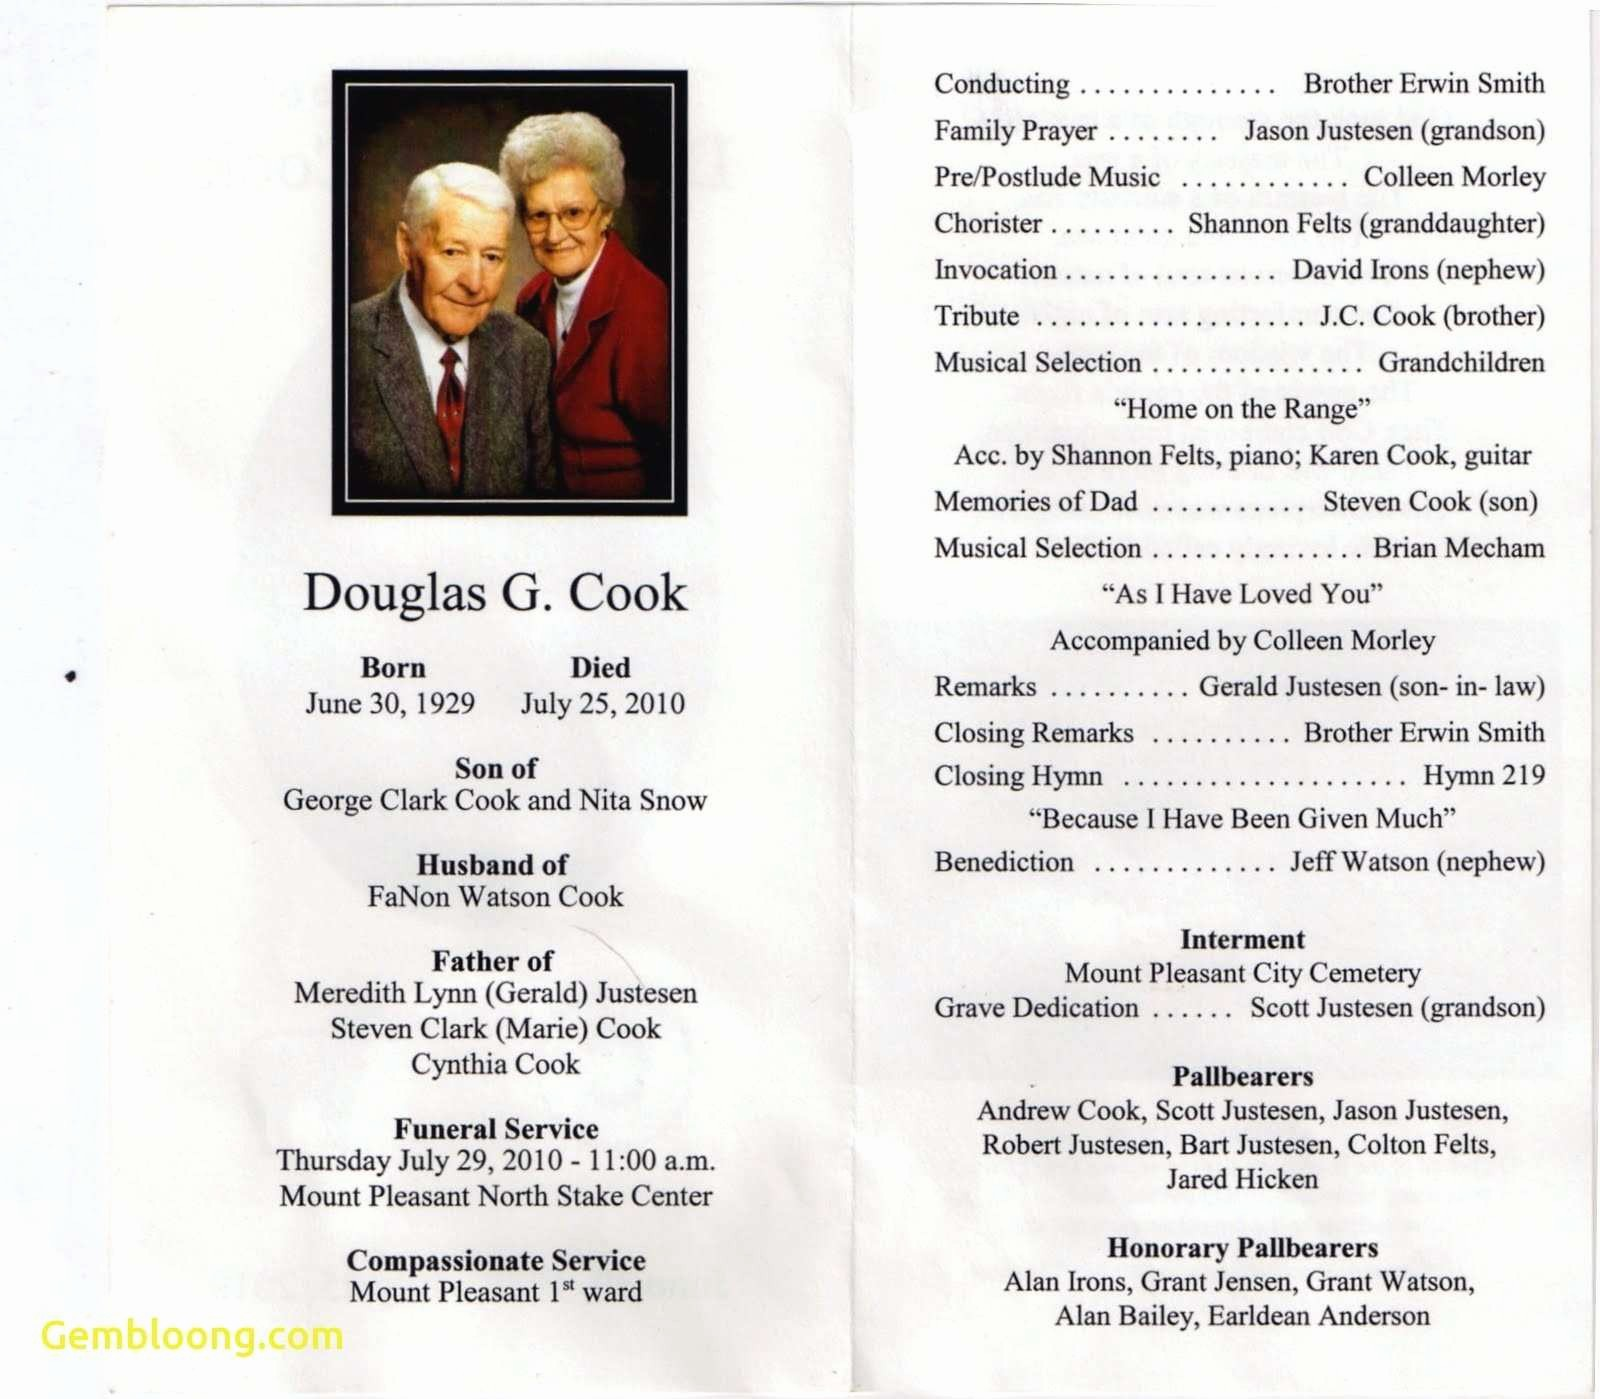 Funeral Program Template Word 2010 Fresh Elegant Memorial Service Program Template Microsoft Word